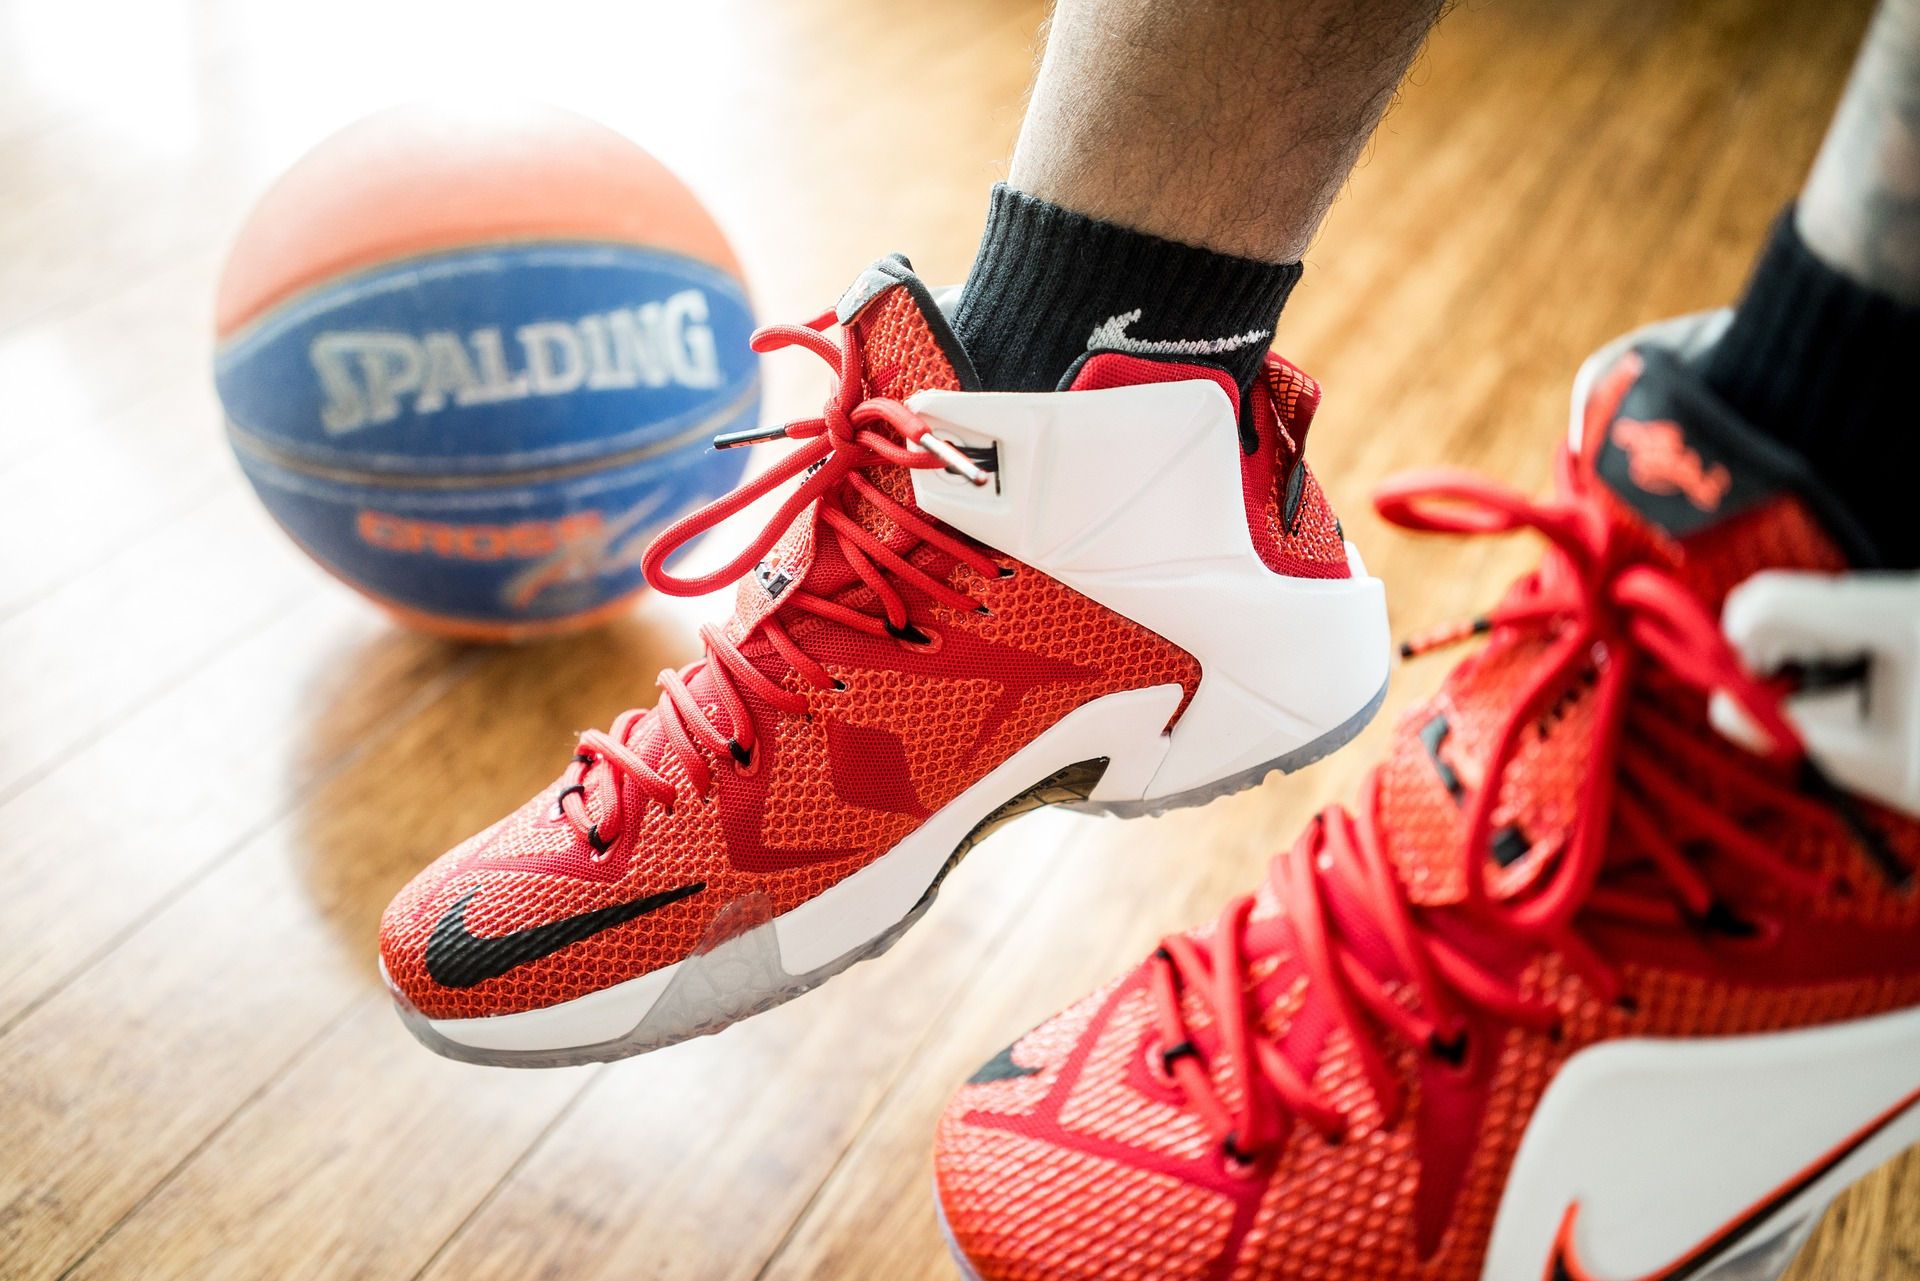 Most Expensive Basketball Shoes In The World